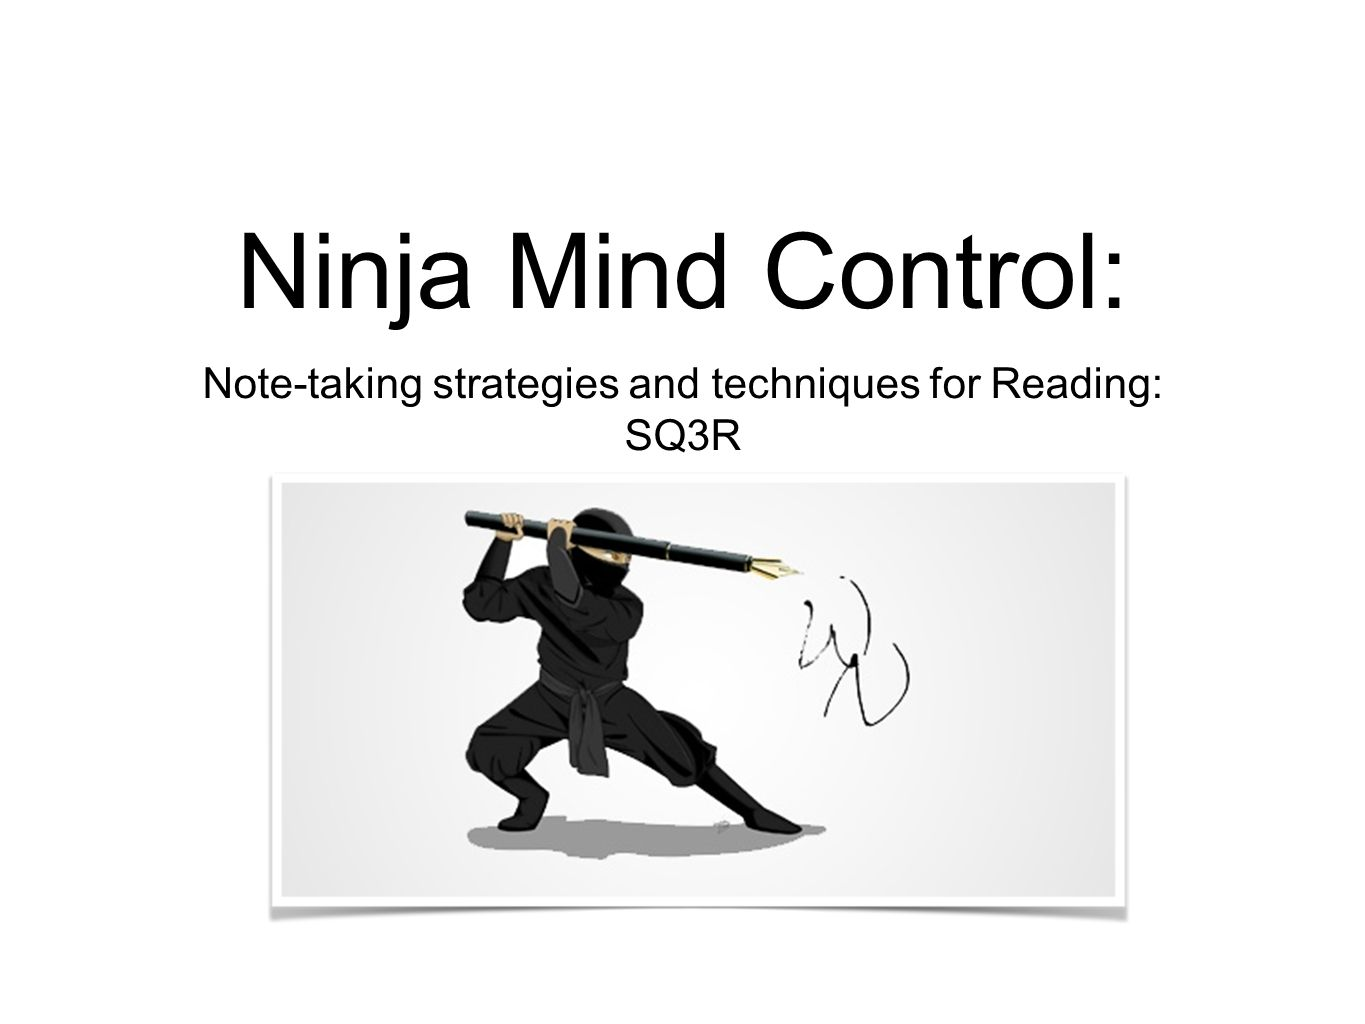 Mind control techniques - Note Taking Strategies And Techniques For Reading